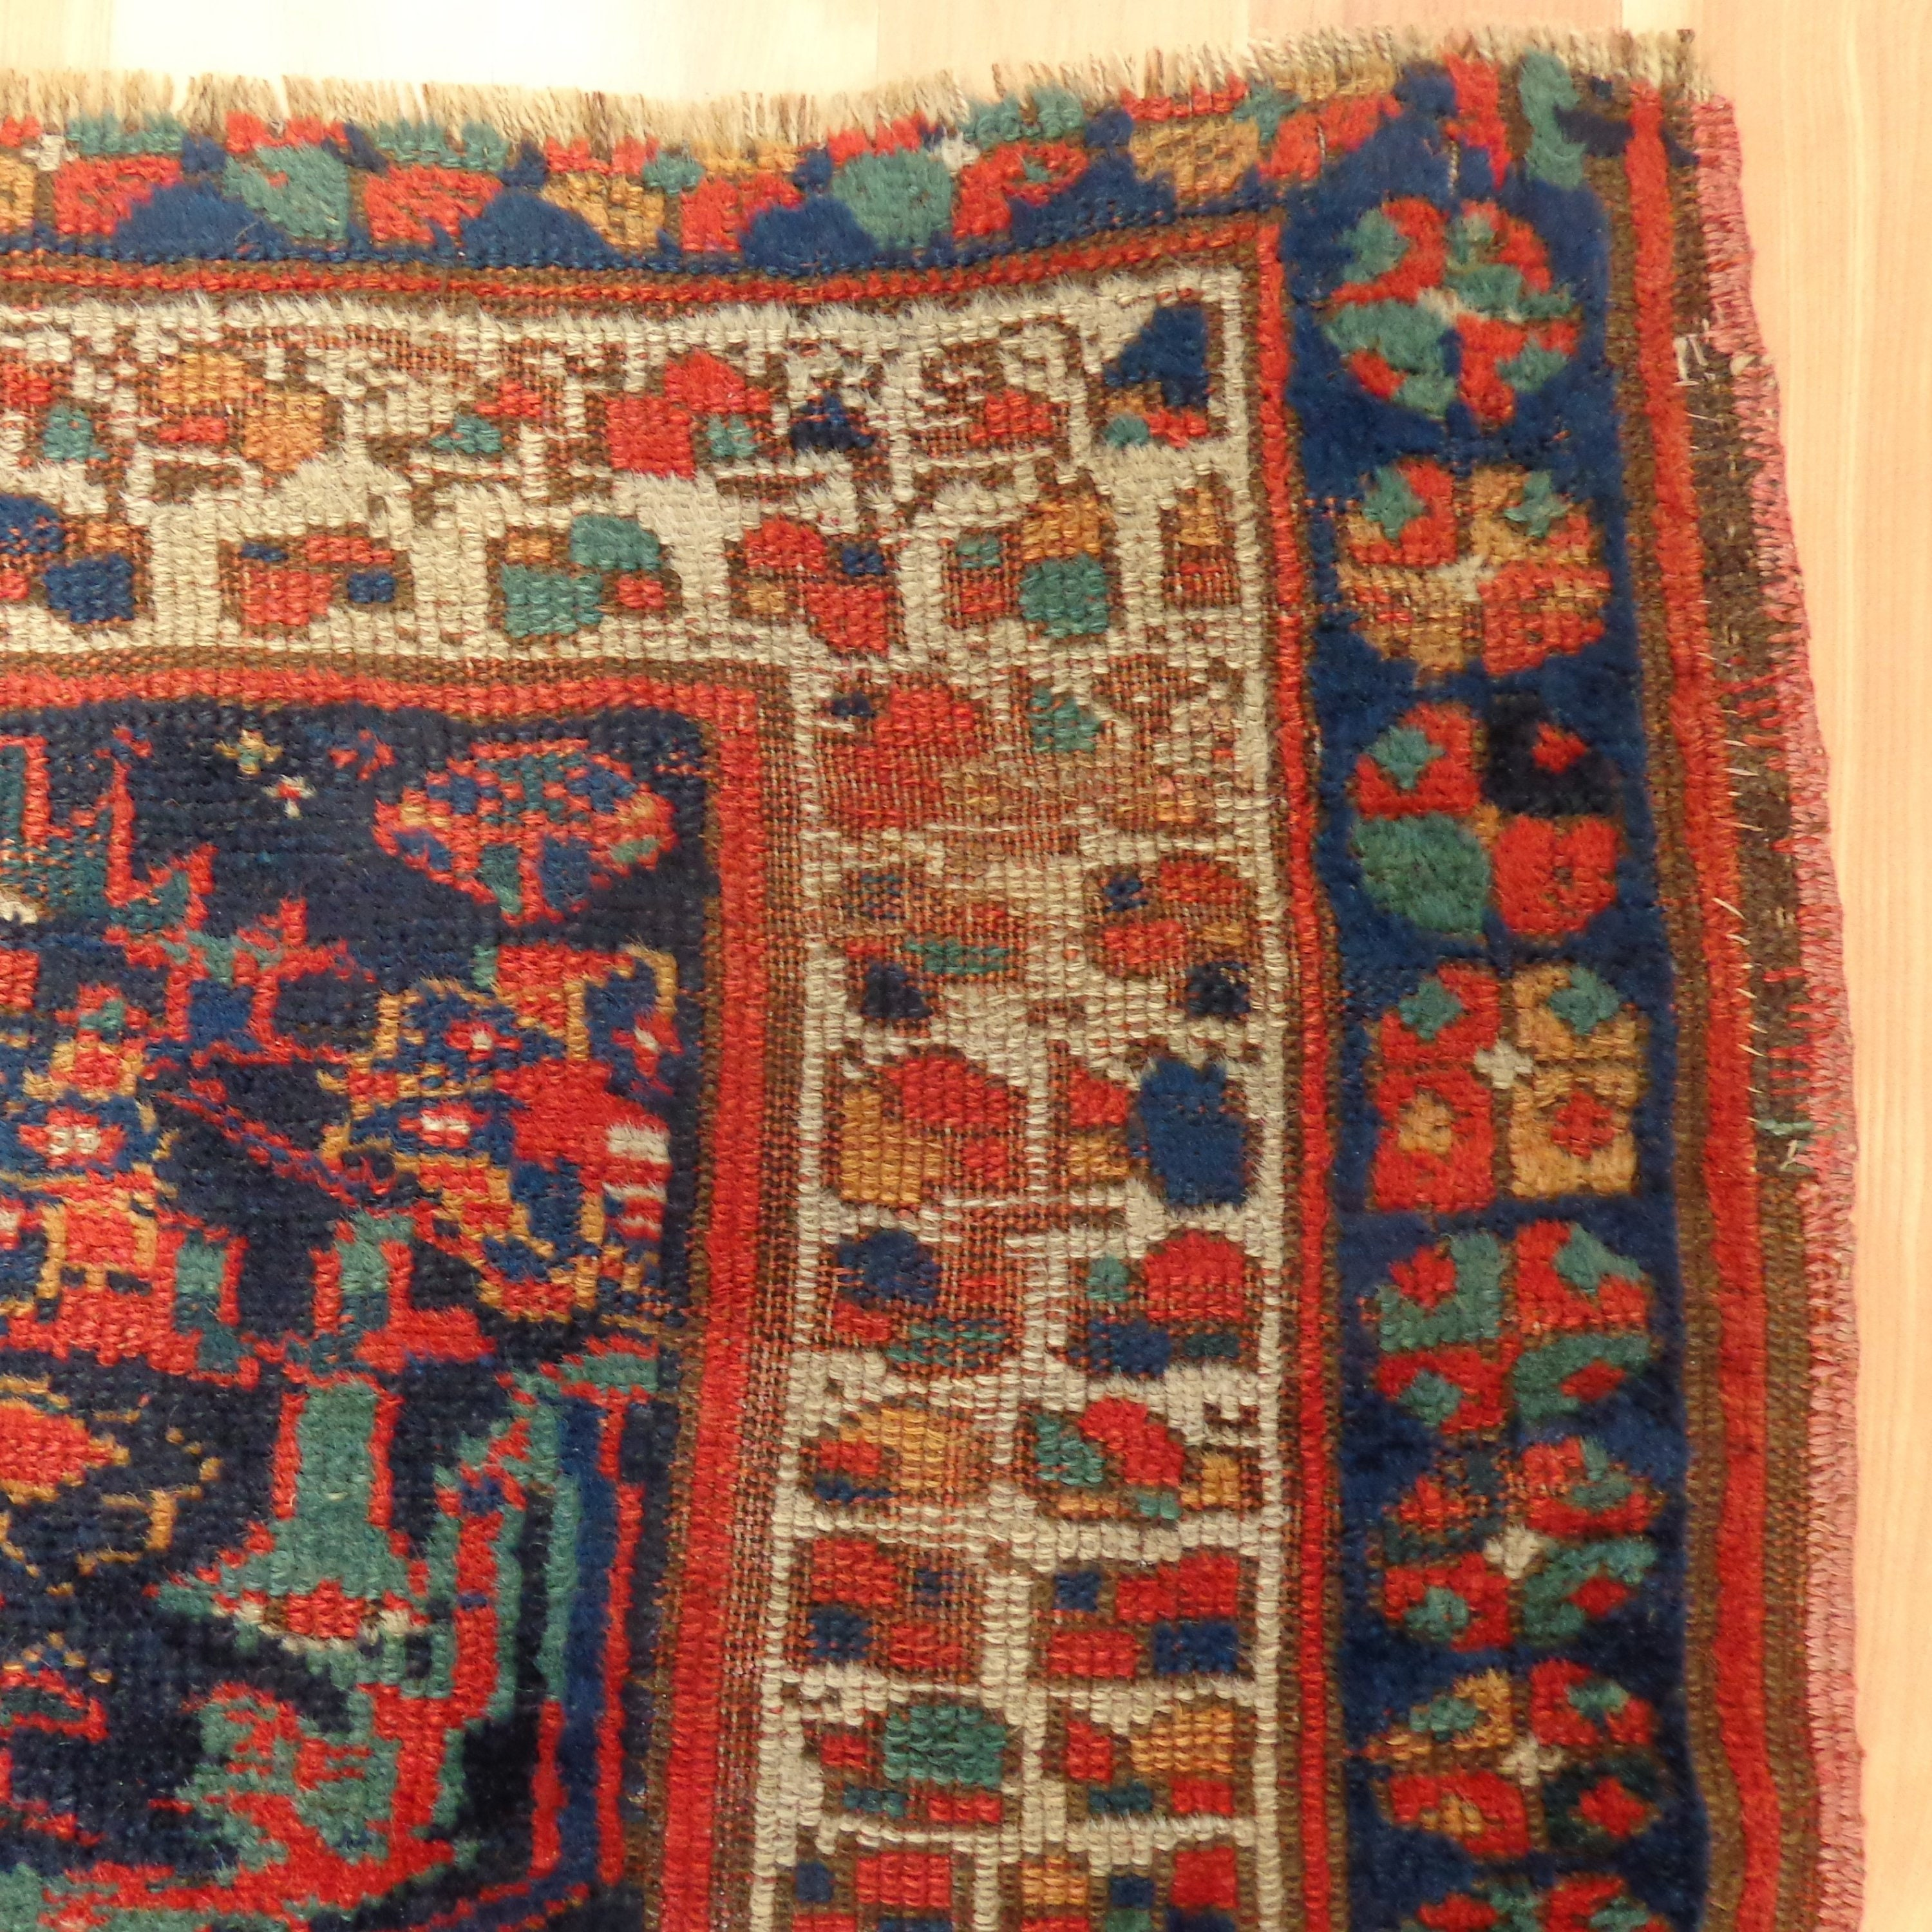 Antique Rug Blue Kurd Bidjar Wool Vintage Rug 4' X 7'